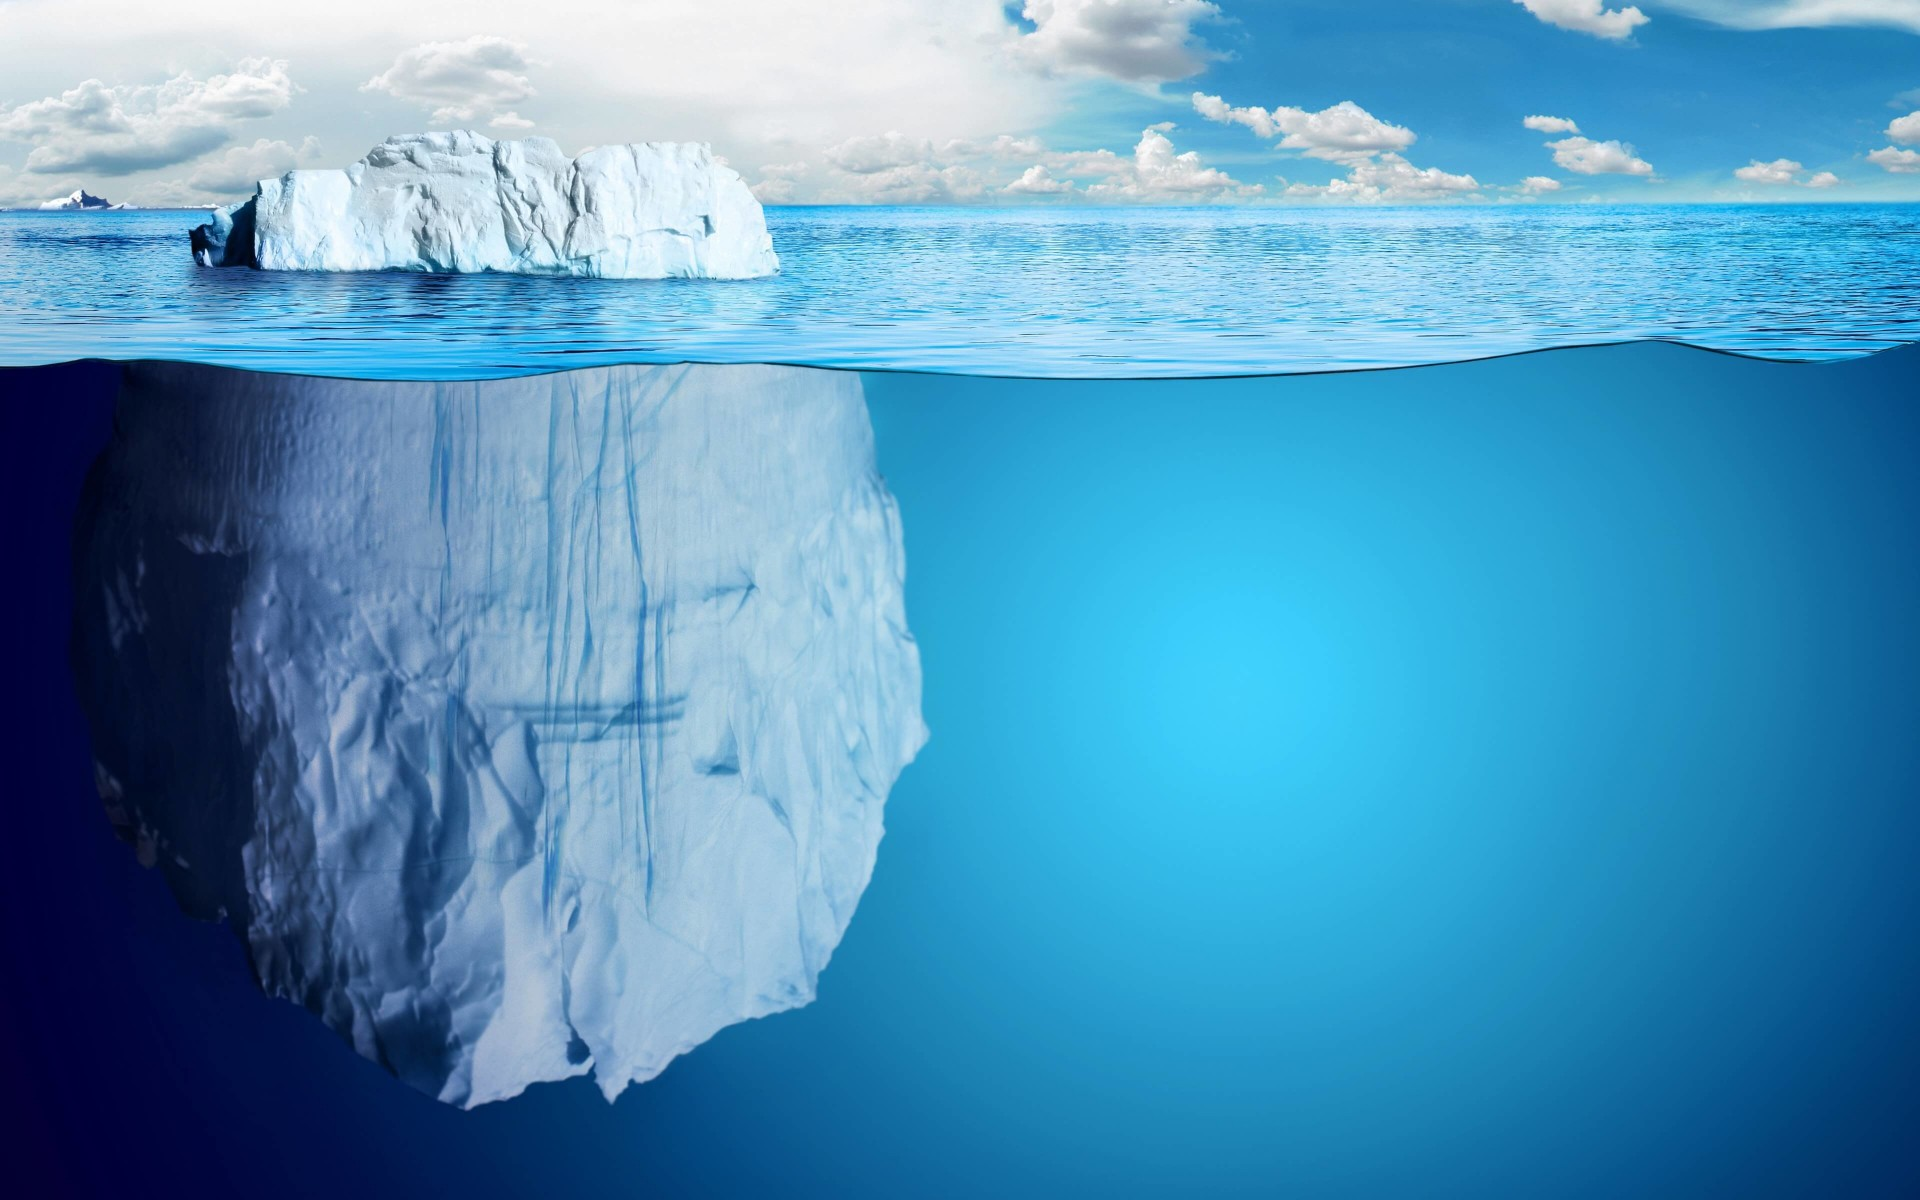 The invisible part of the iceberg Wallpaper for Desktop 1920x1200